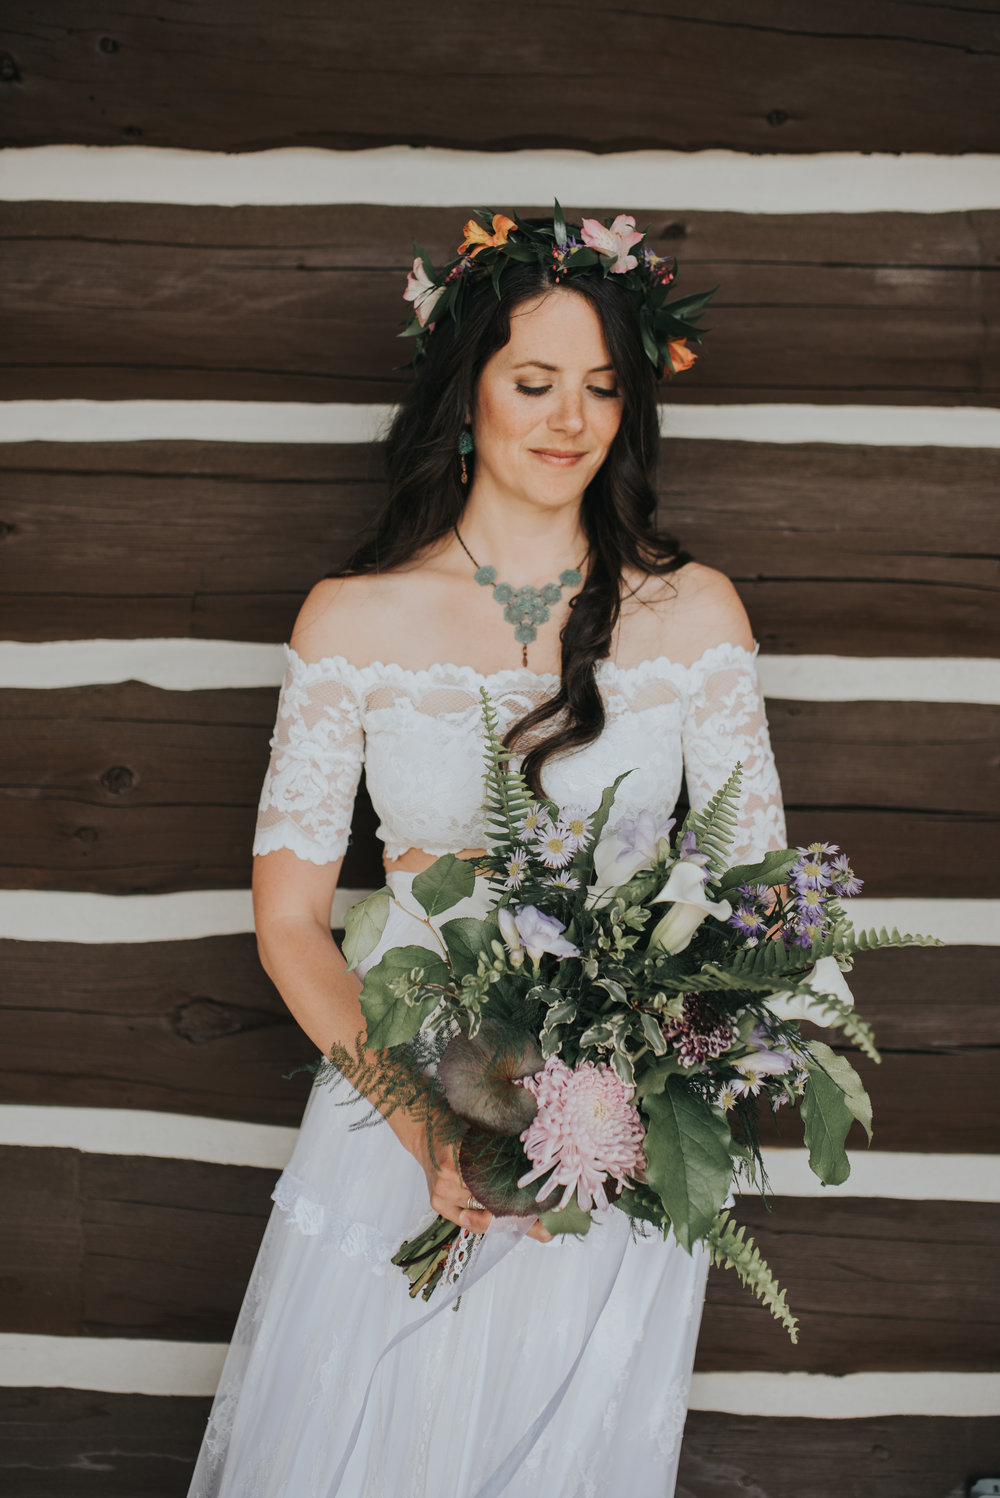 bridal-portrait-toronto-bohemian-boho-outdoor-summer-wedding-documentary-wedding-photography-by-willow-birch-photo.jpg